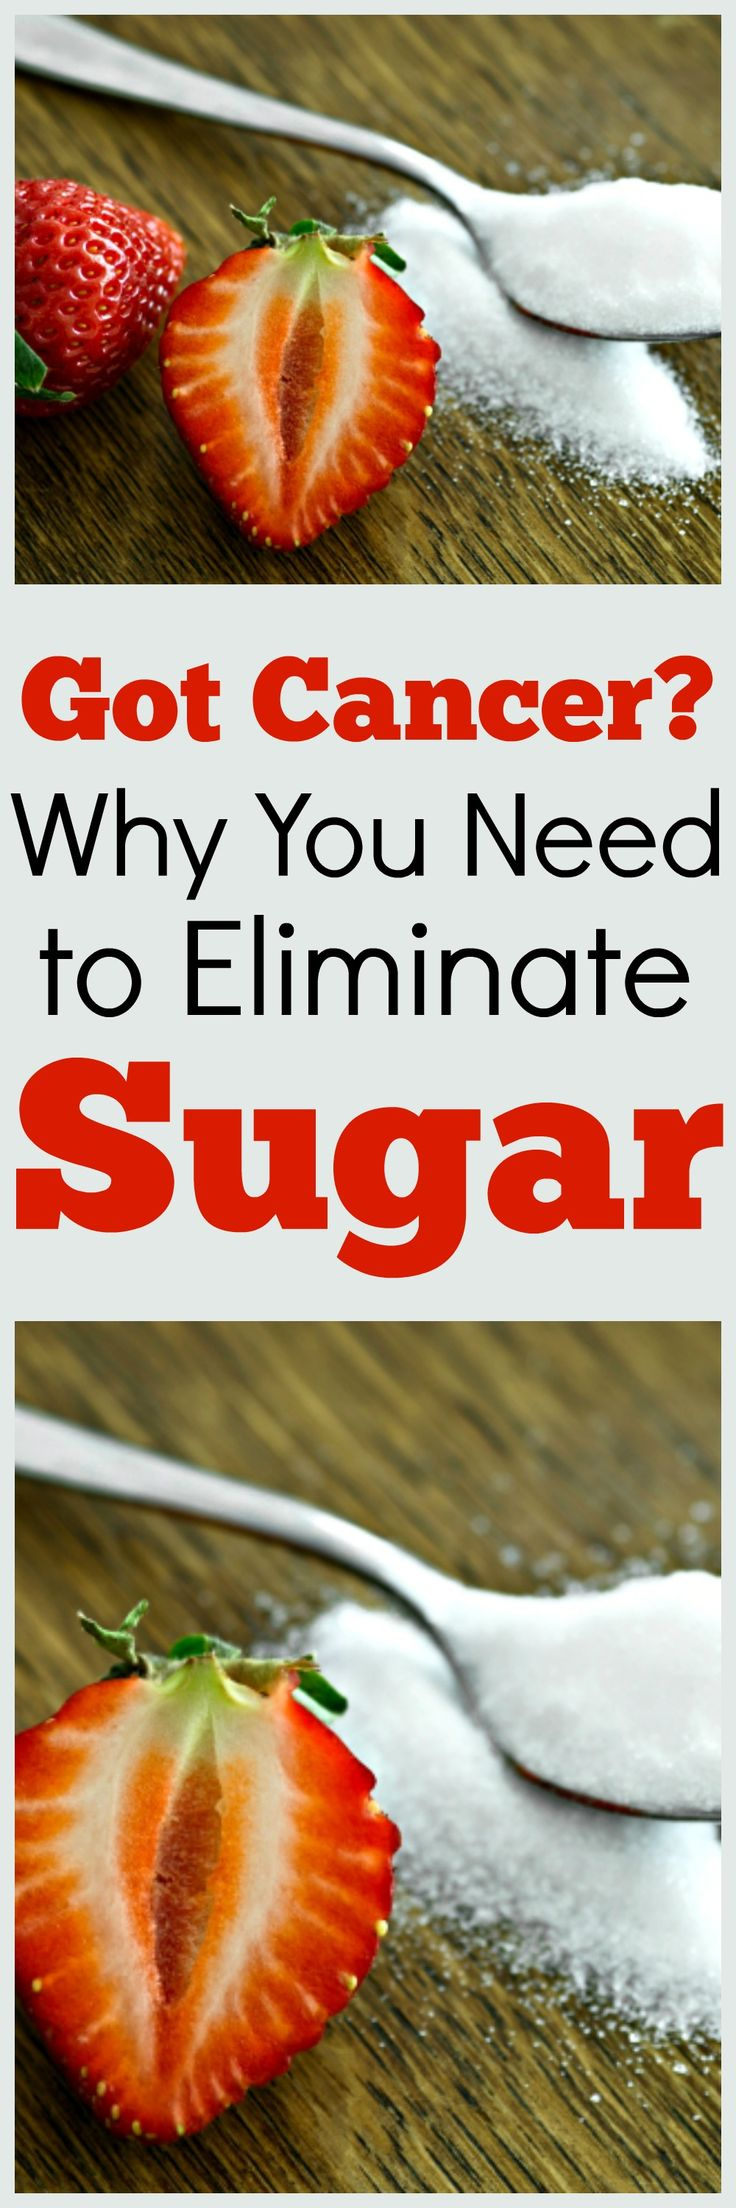 http://www.furtherfood.com/cancer-remove-sugar-from-diet-no-sugar-detox/